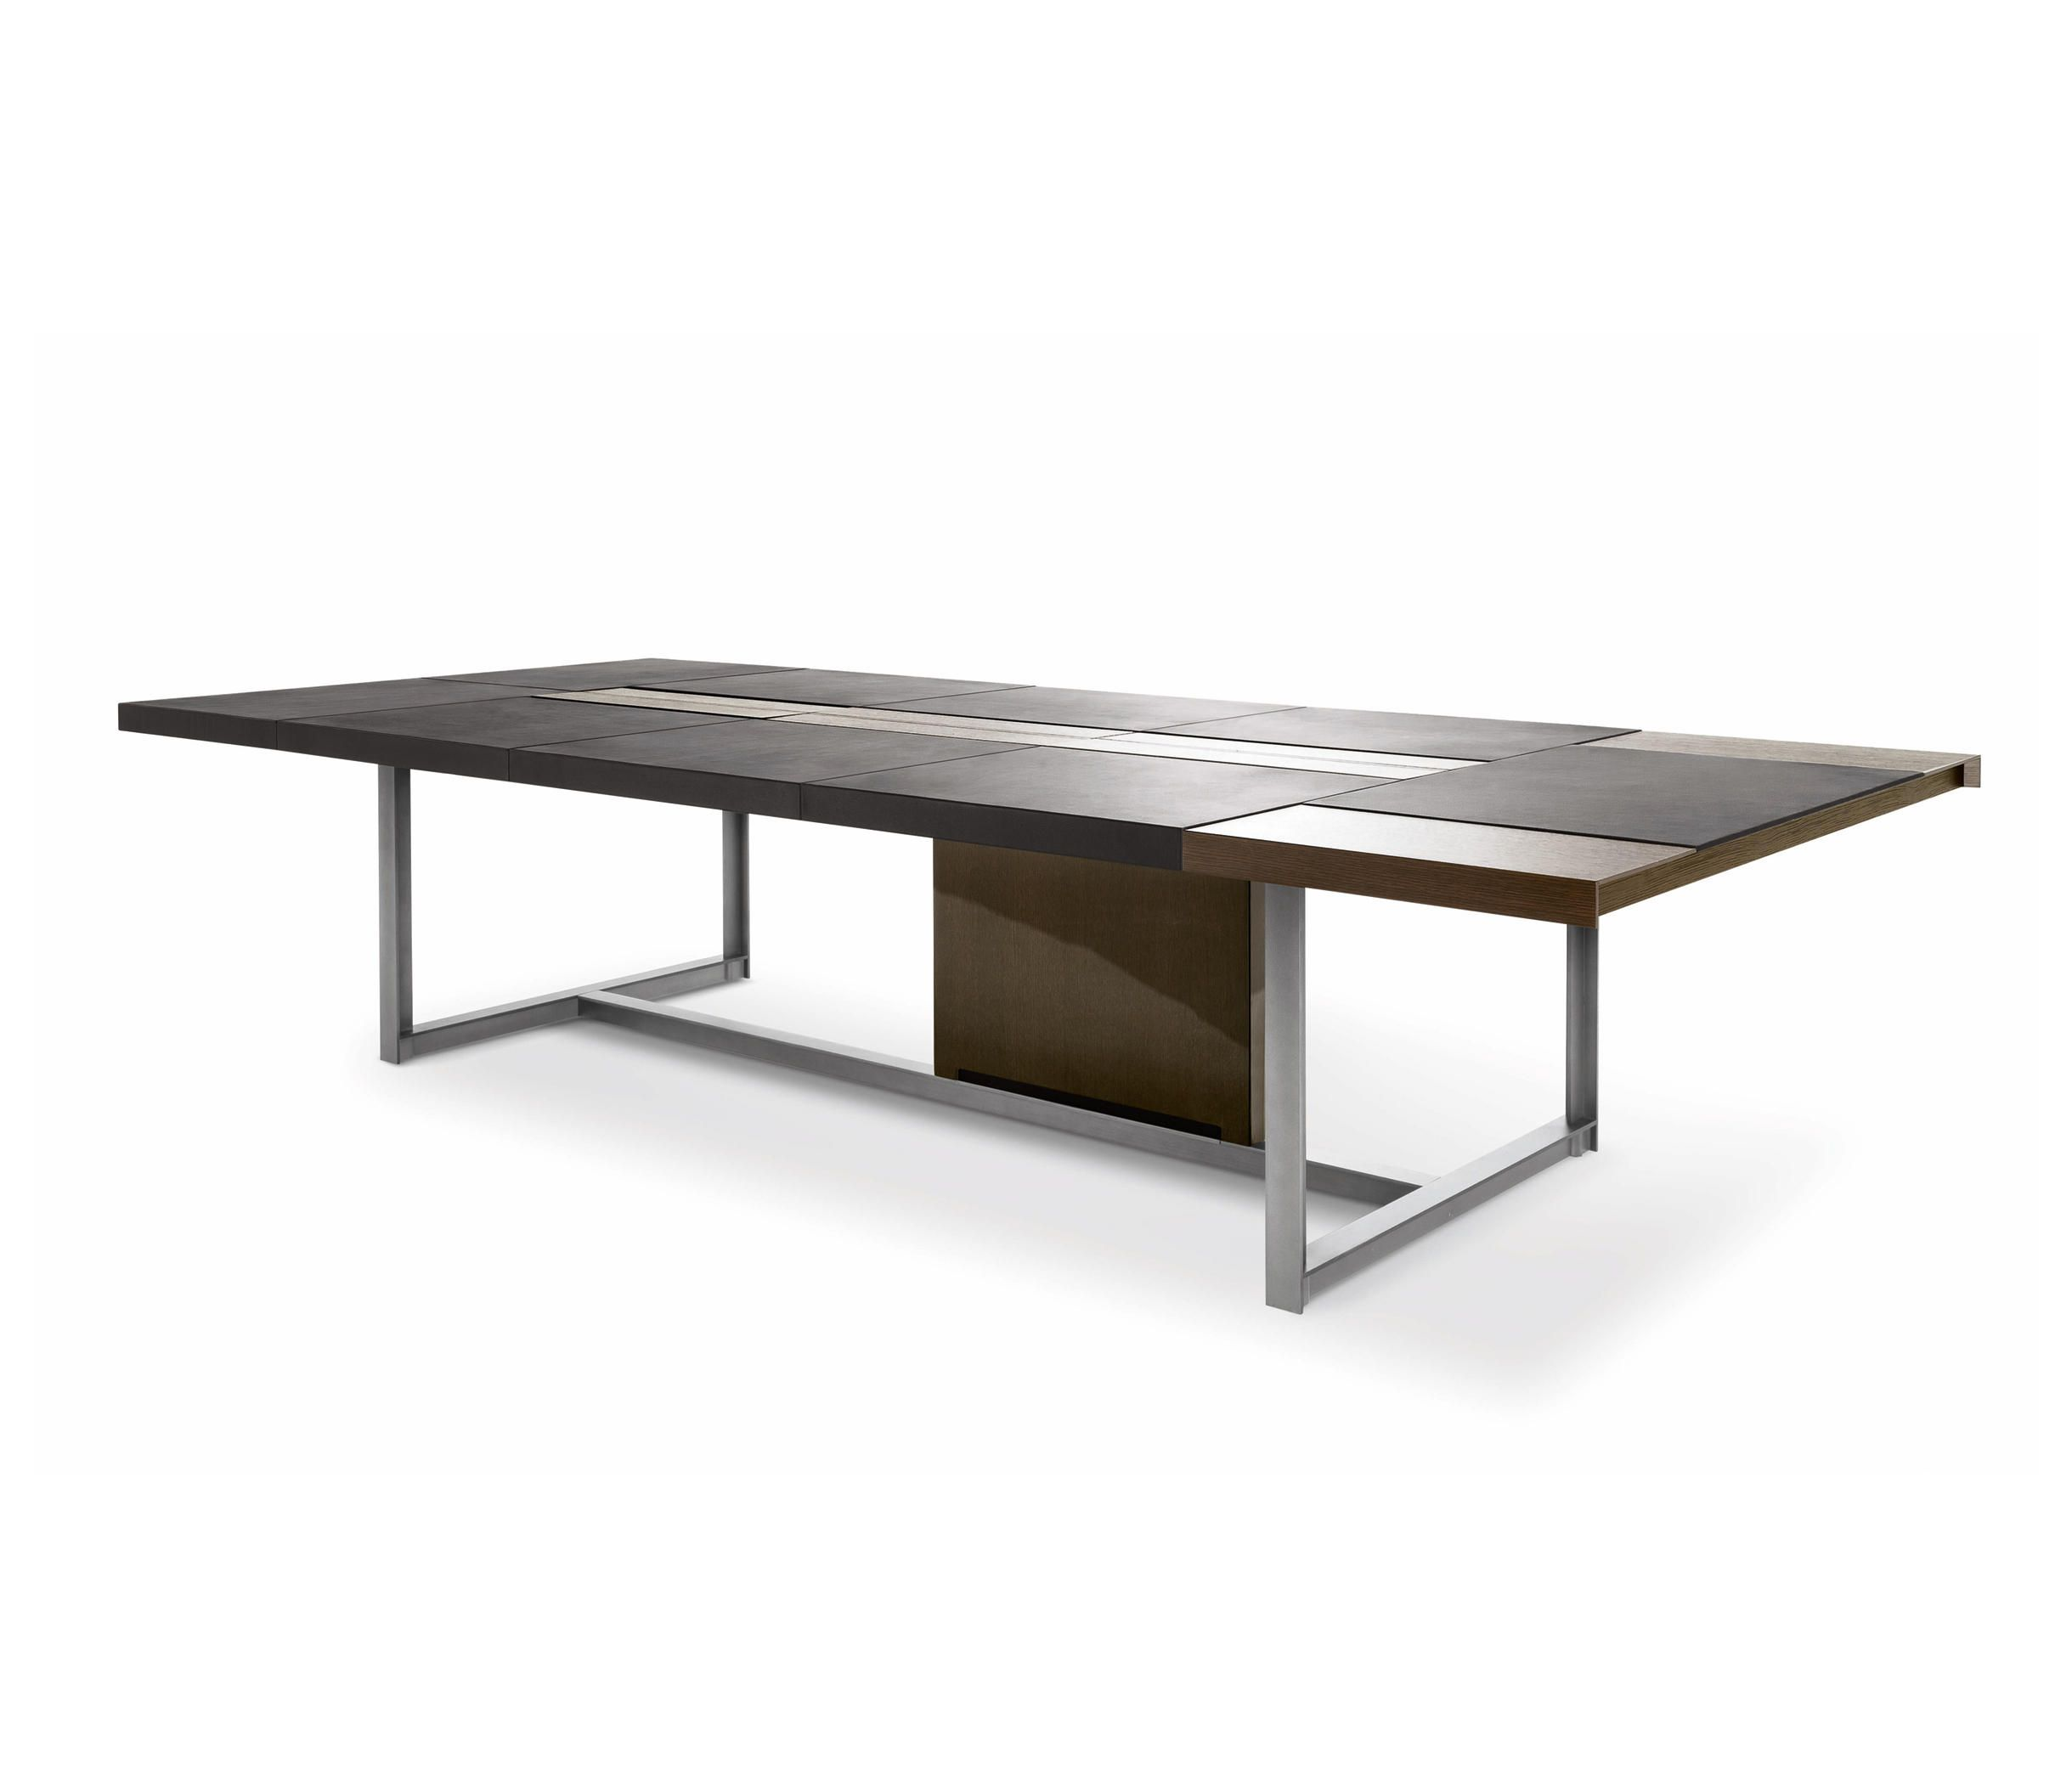 Designer Conference Tables From